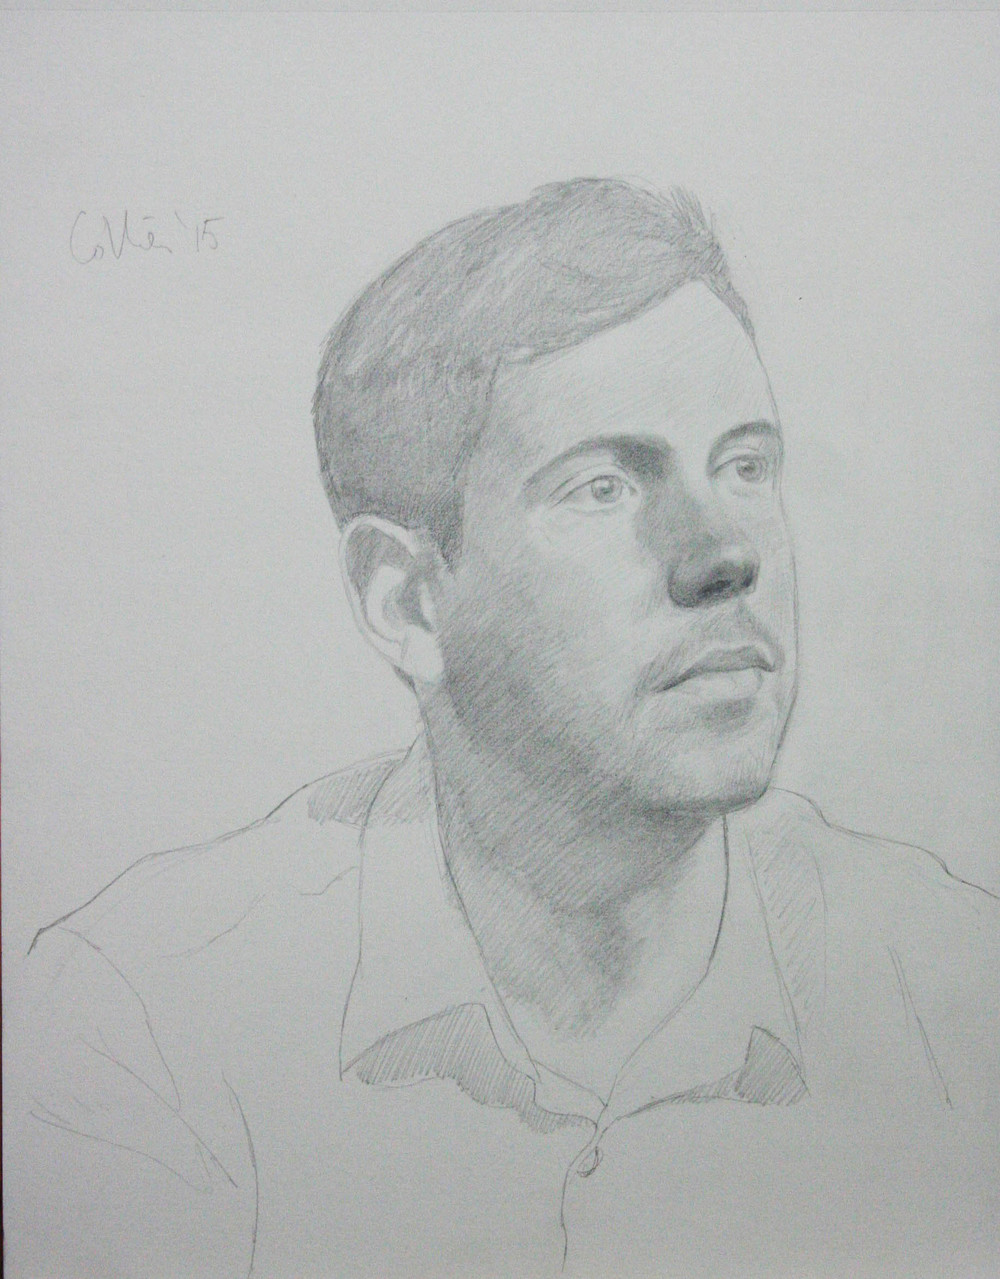 Howard Collier did this 3-hour drawing of Eric Gearhart.